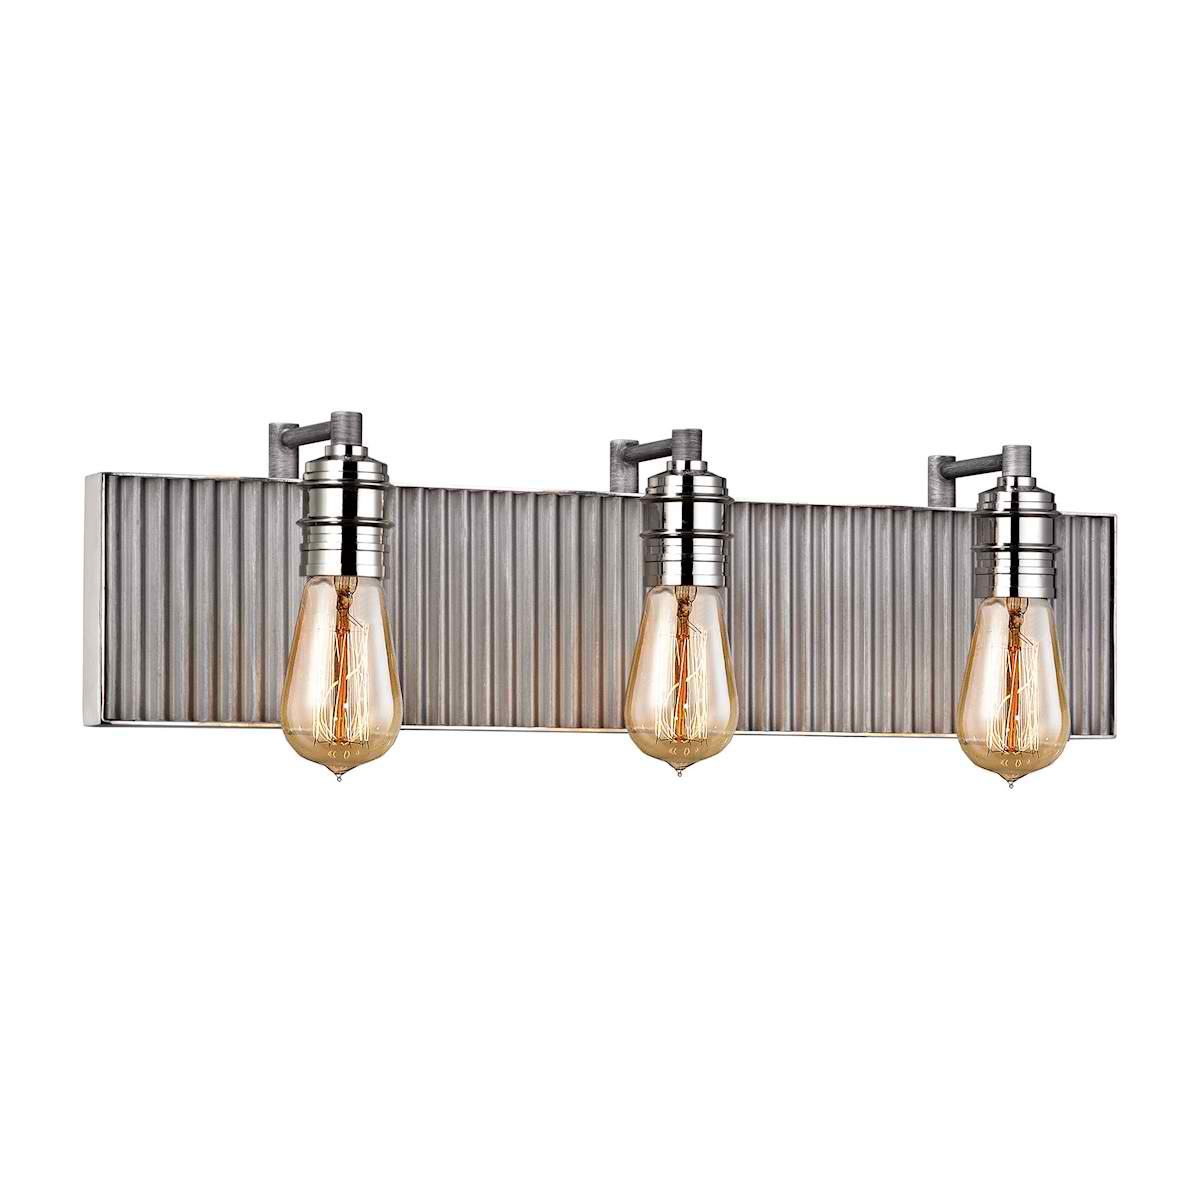 Corrugated Steel 3 Light Vanity in Weathered Zinc and Polished Nickel